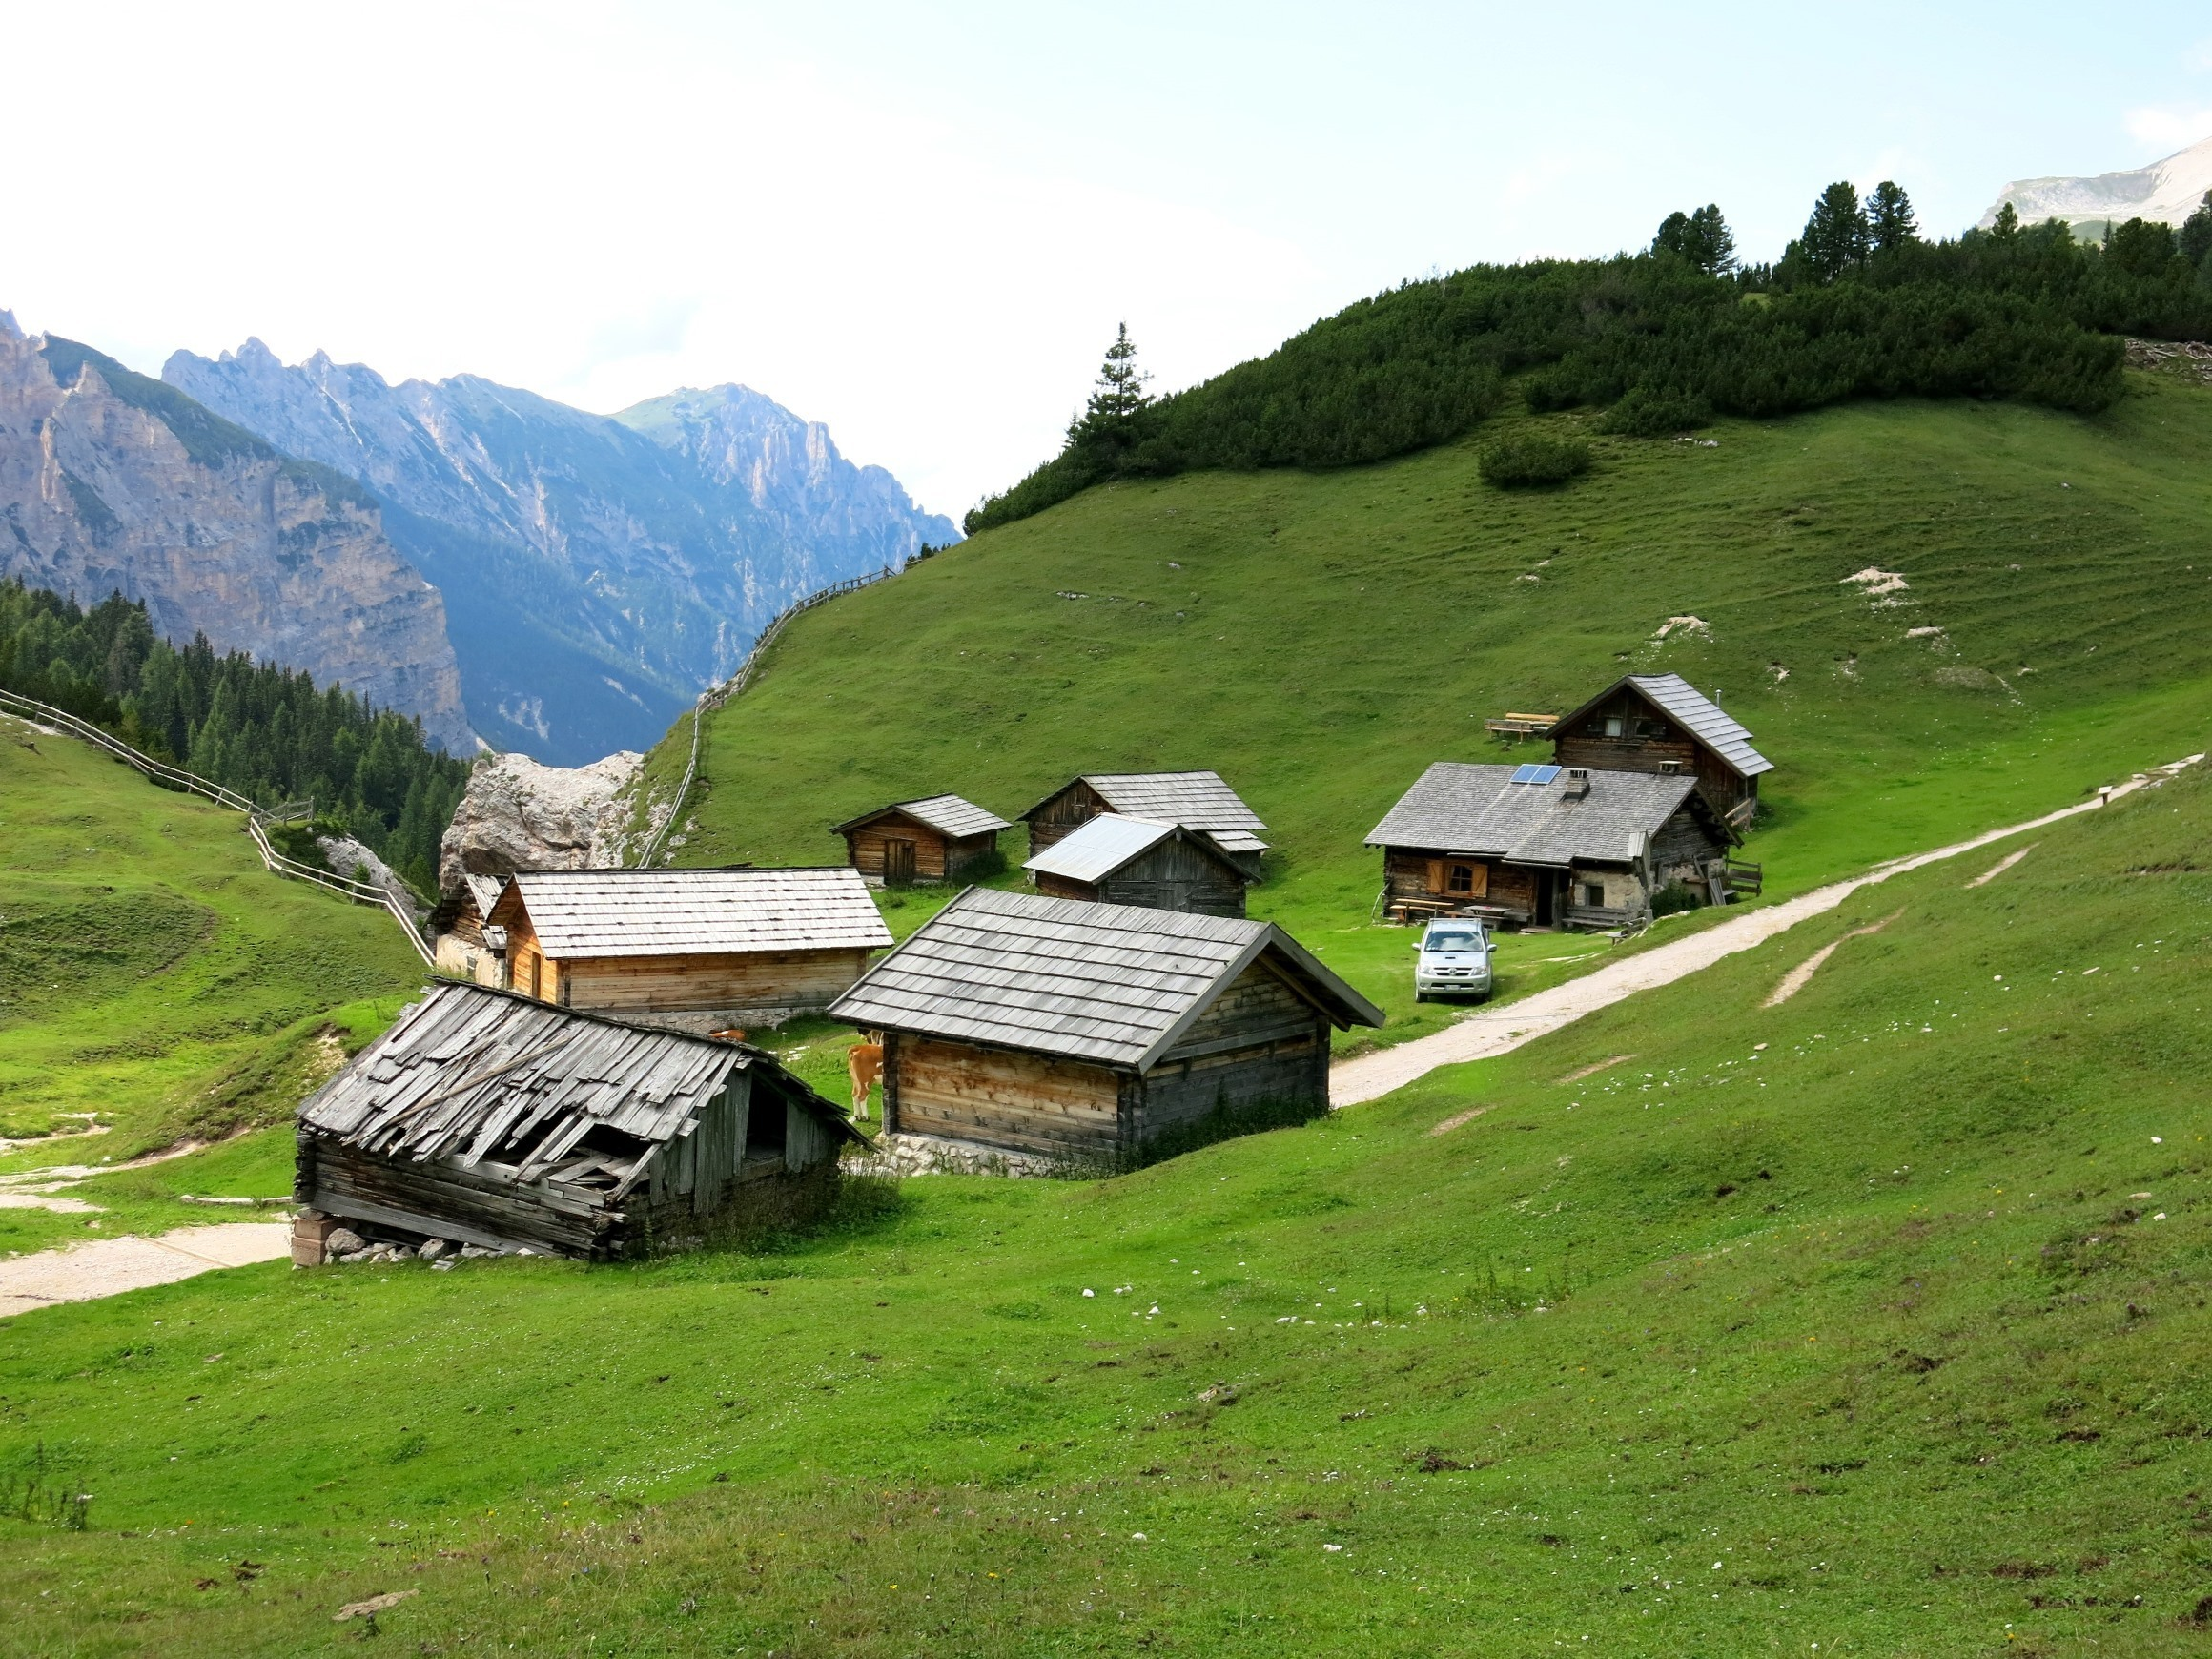 A set of huts in a remote village in the mountains.